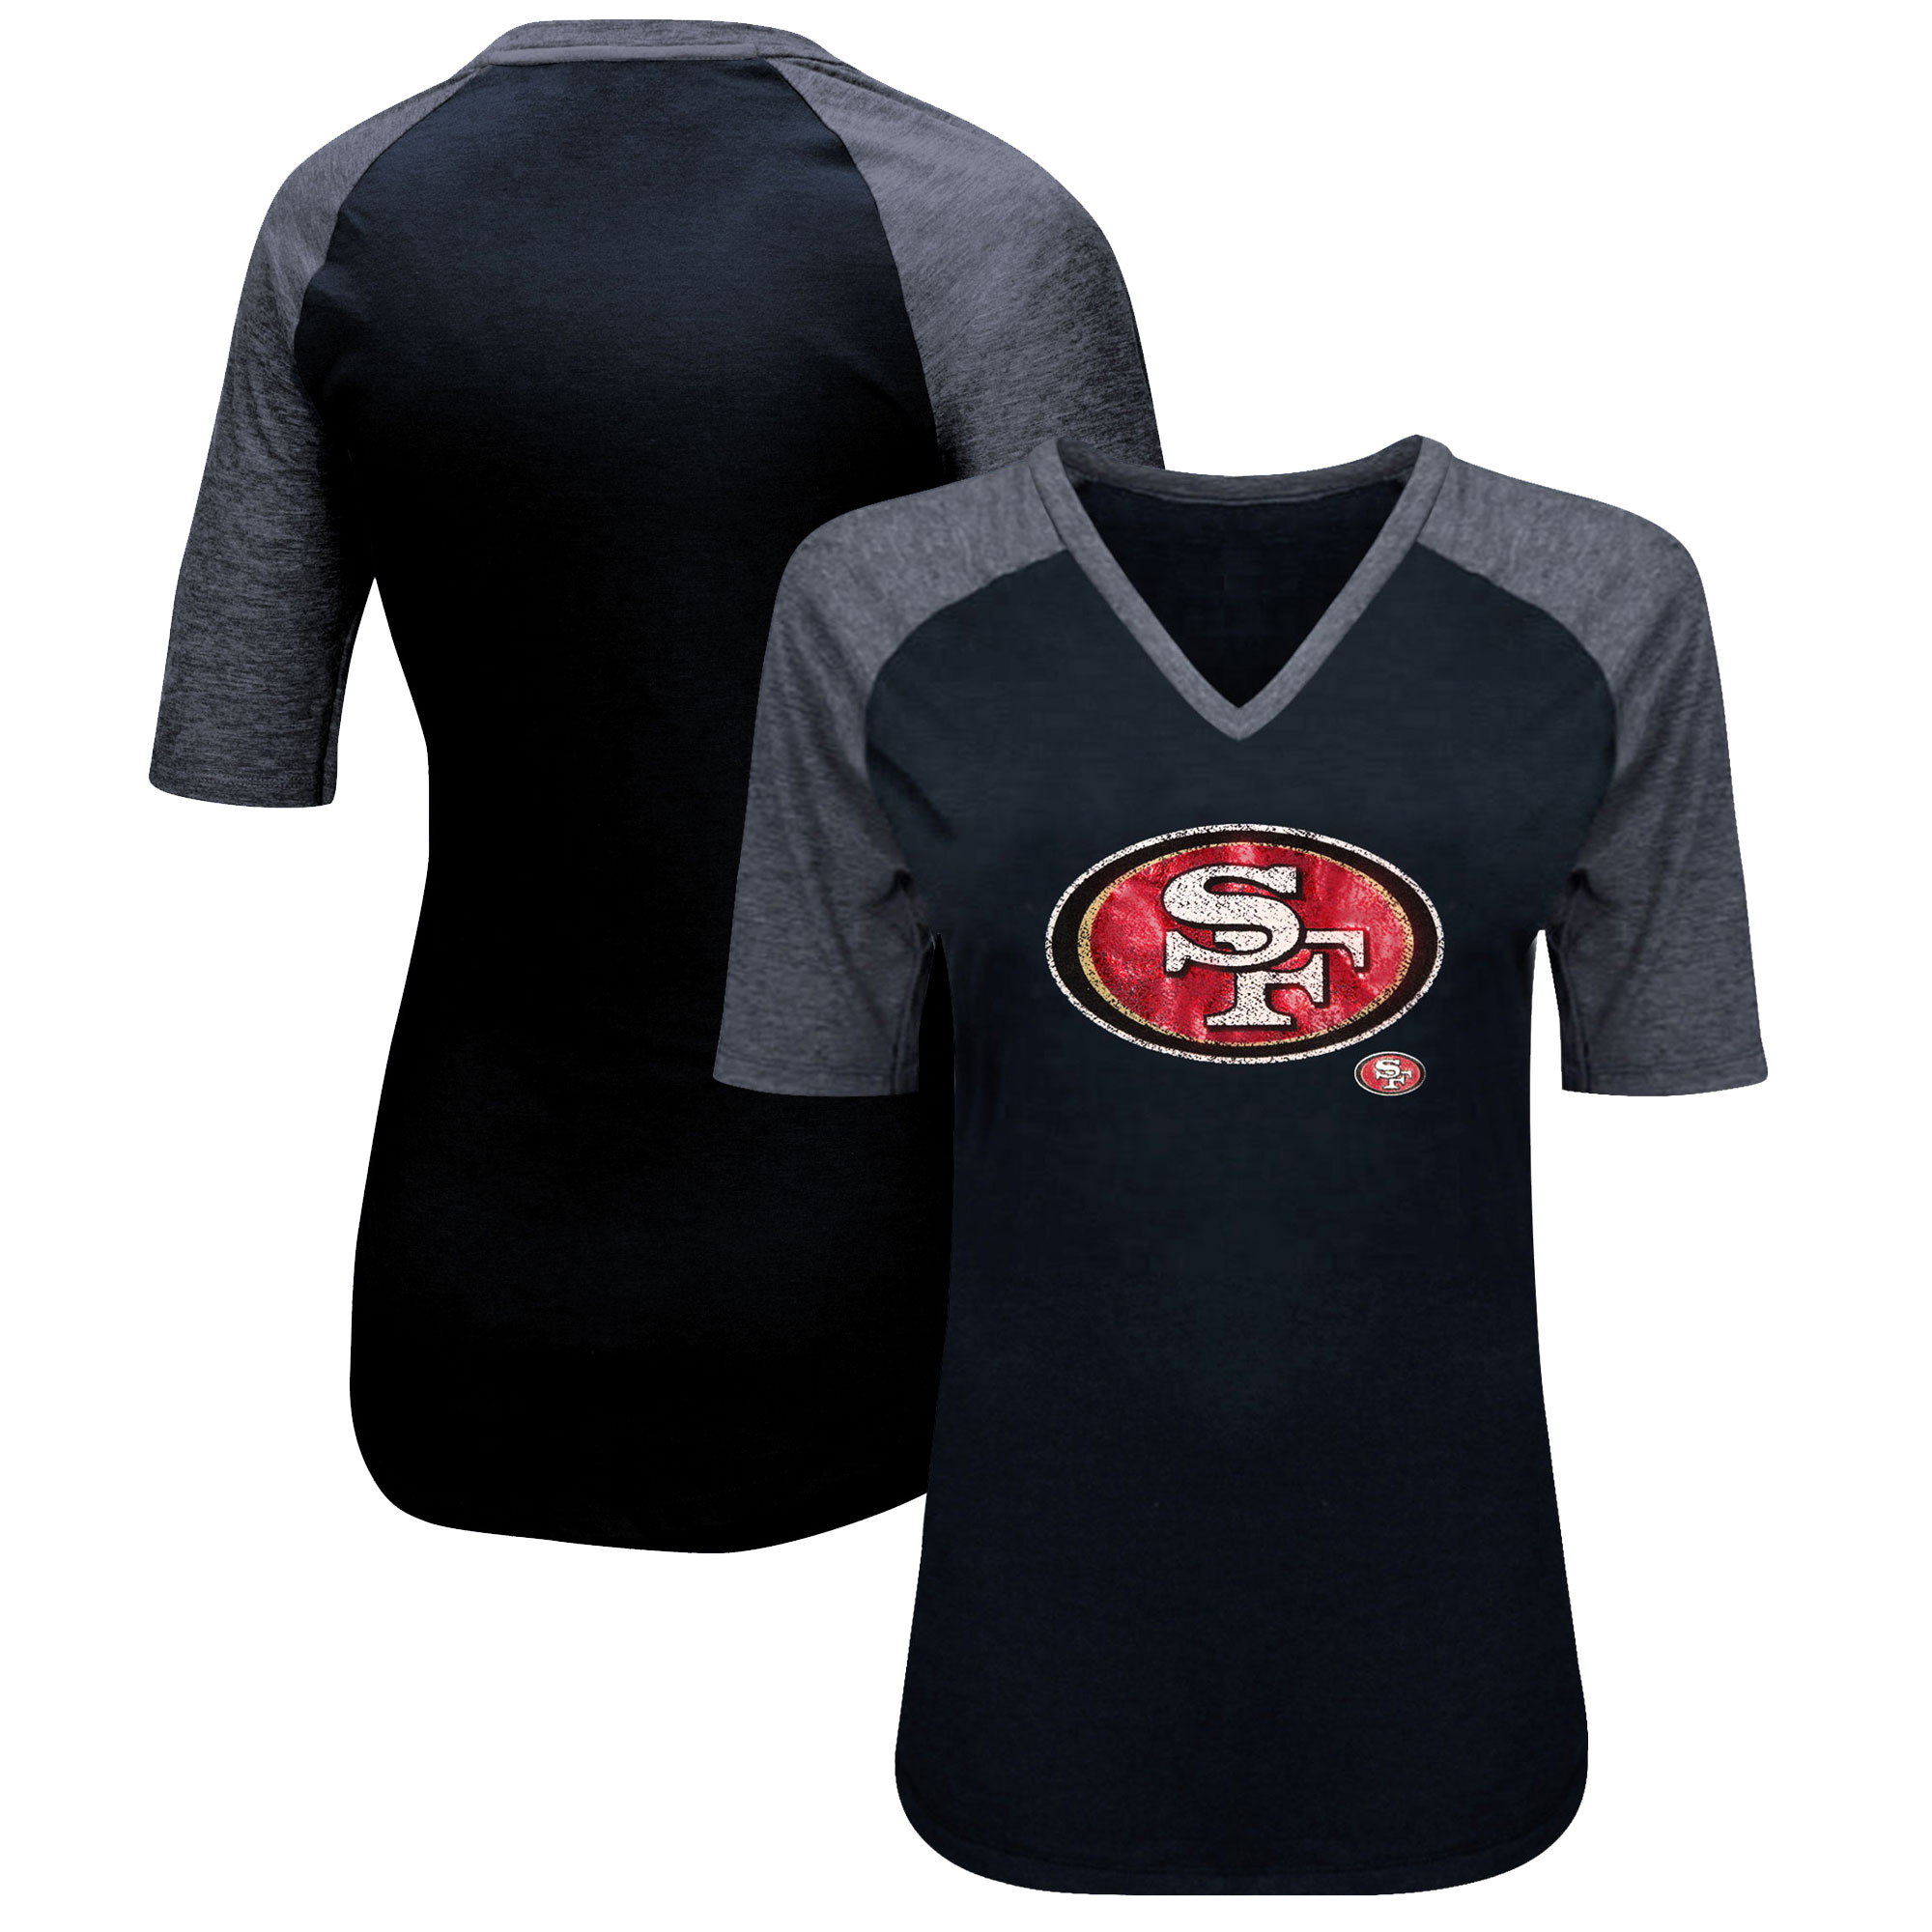 San Francisco 49ers Majestic Women's Highlight Play Half Sleeve Raglan Plus Size T-Shirt - Black/Heathered Black